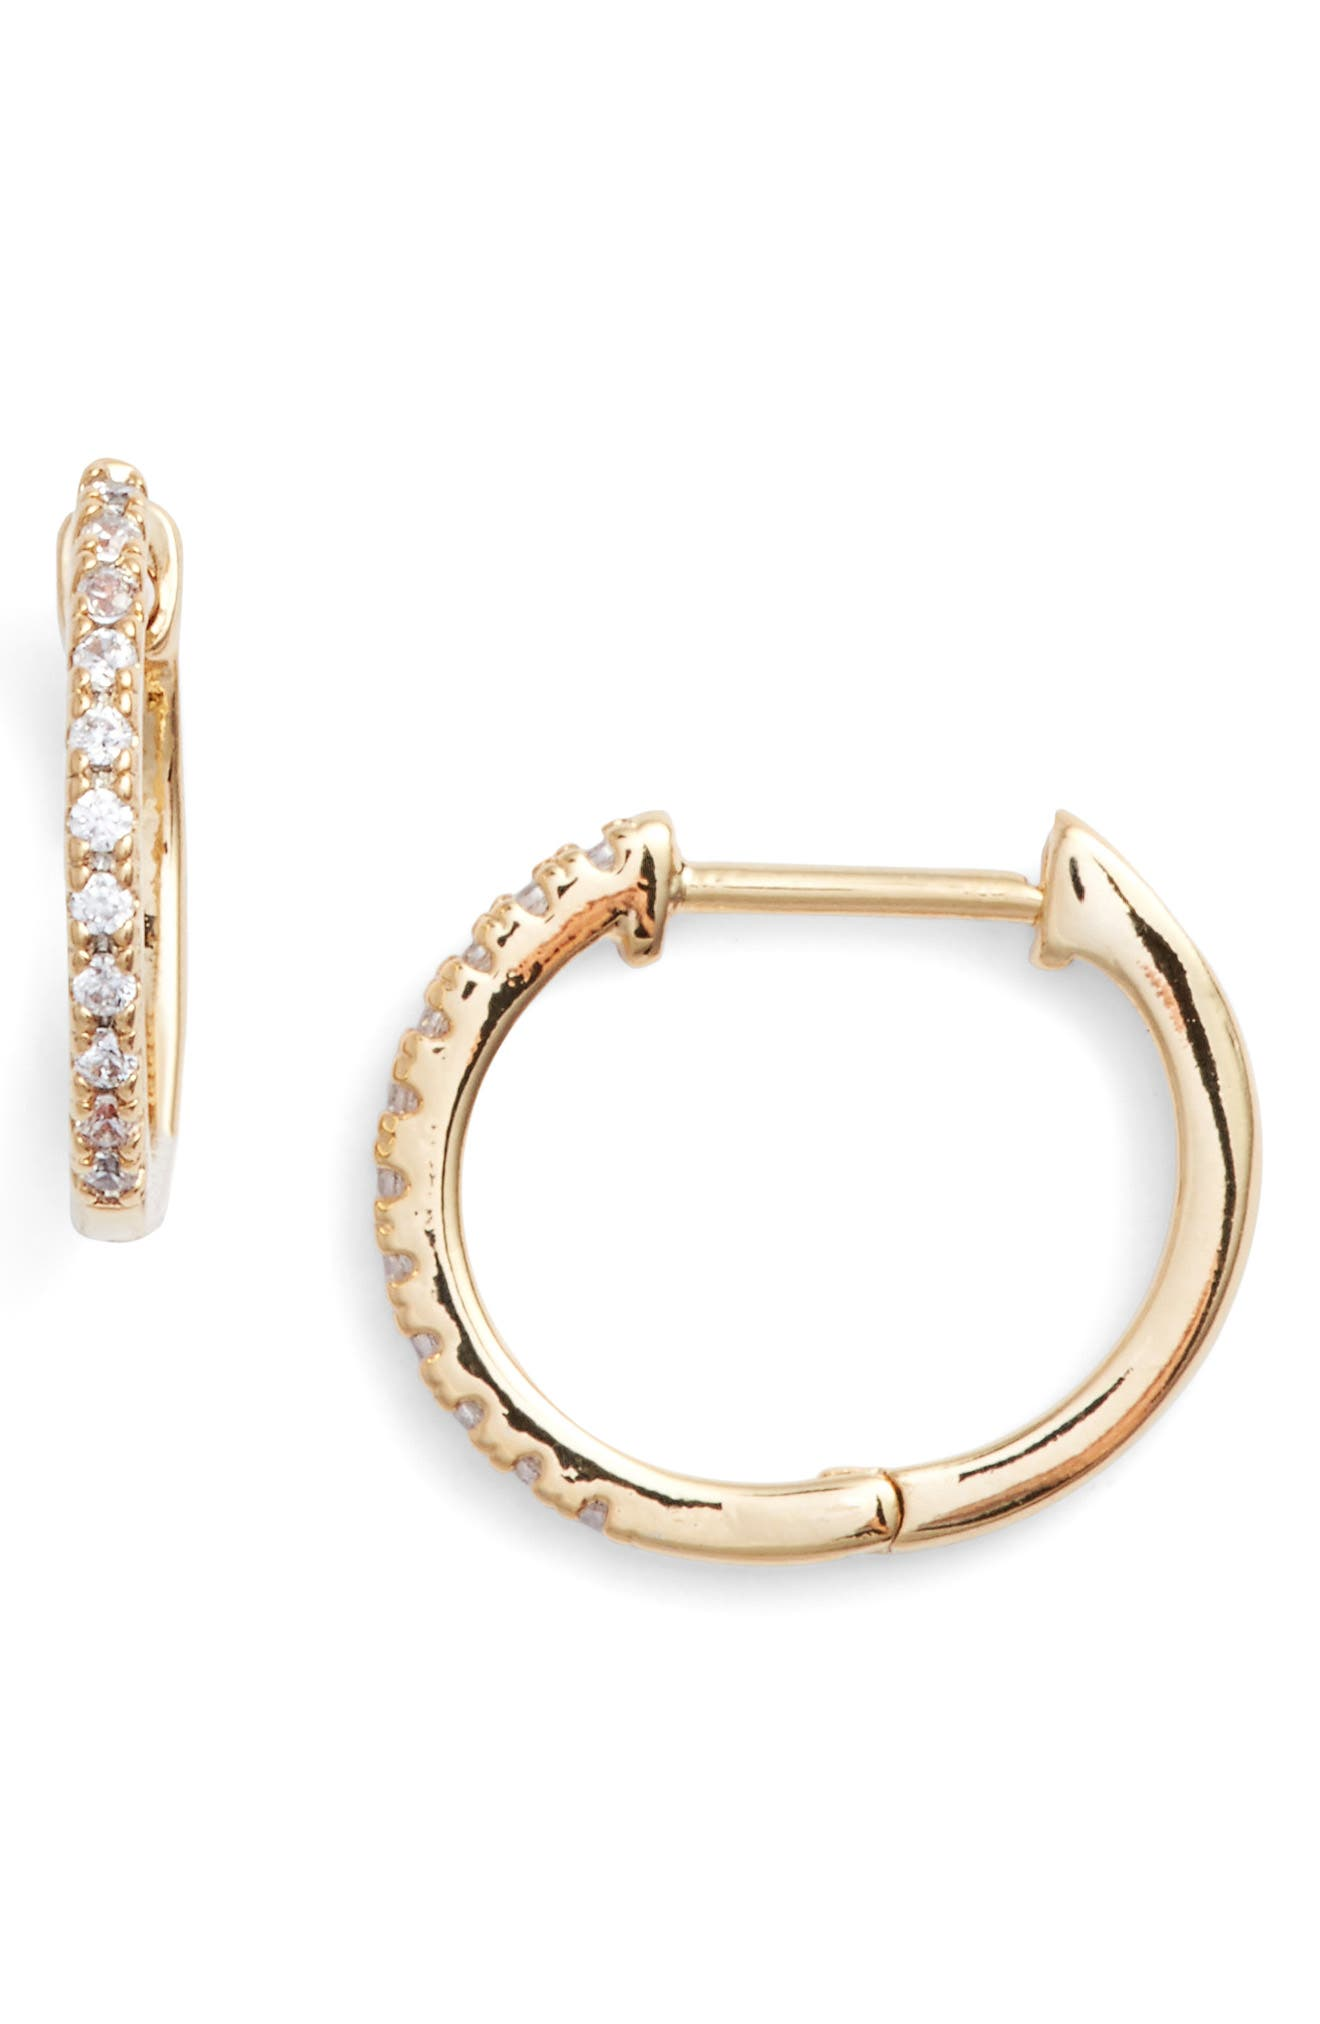 Kennedy Petite Stone Hoops,                             Main thumbnail 1, color,                             Gold/ Cubic Zirconia